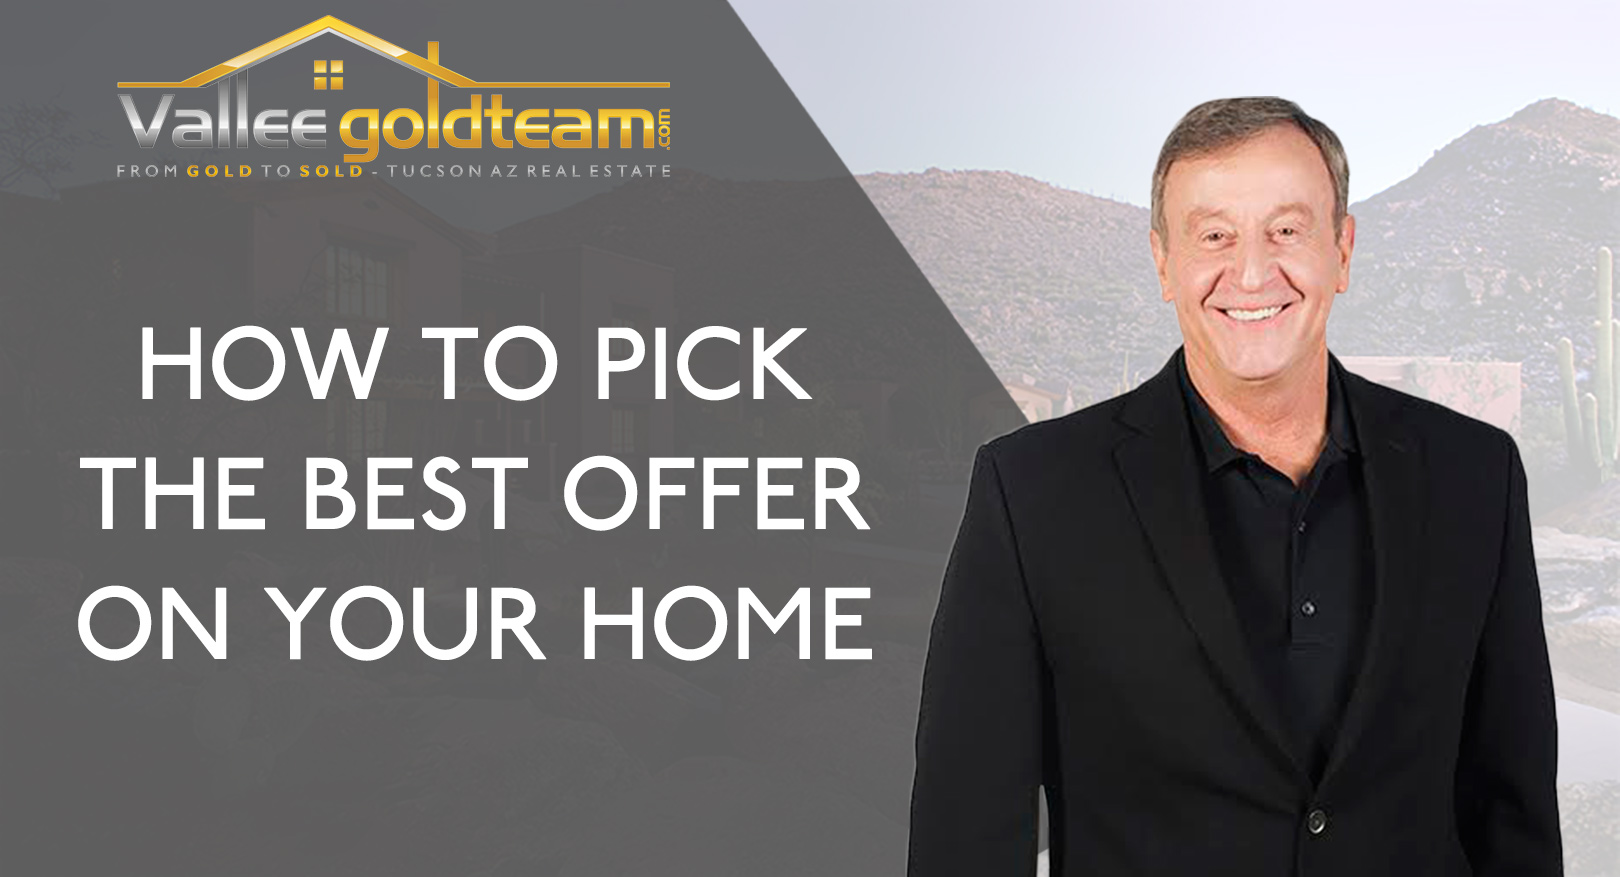 How Do You Pick the Best Home Offer?